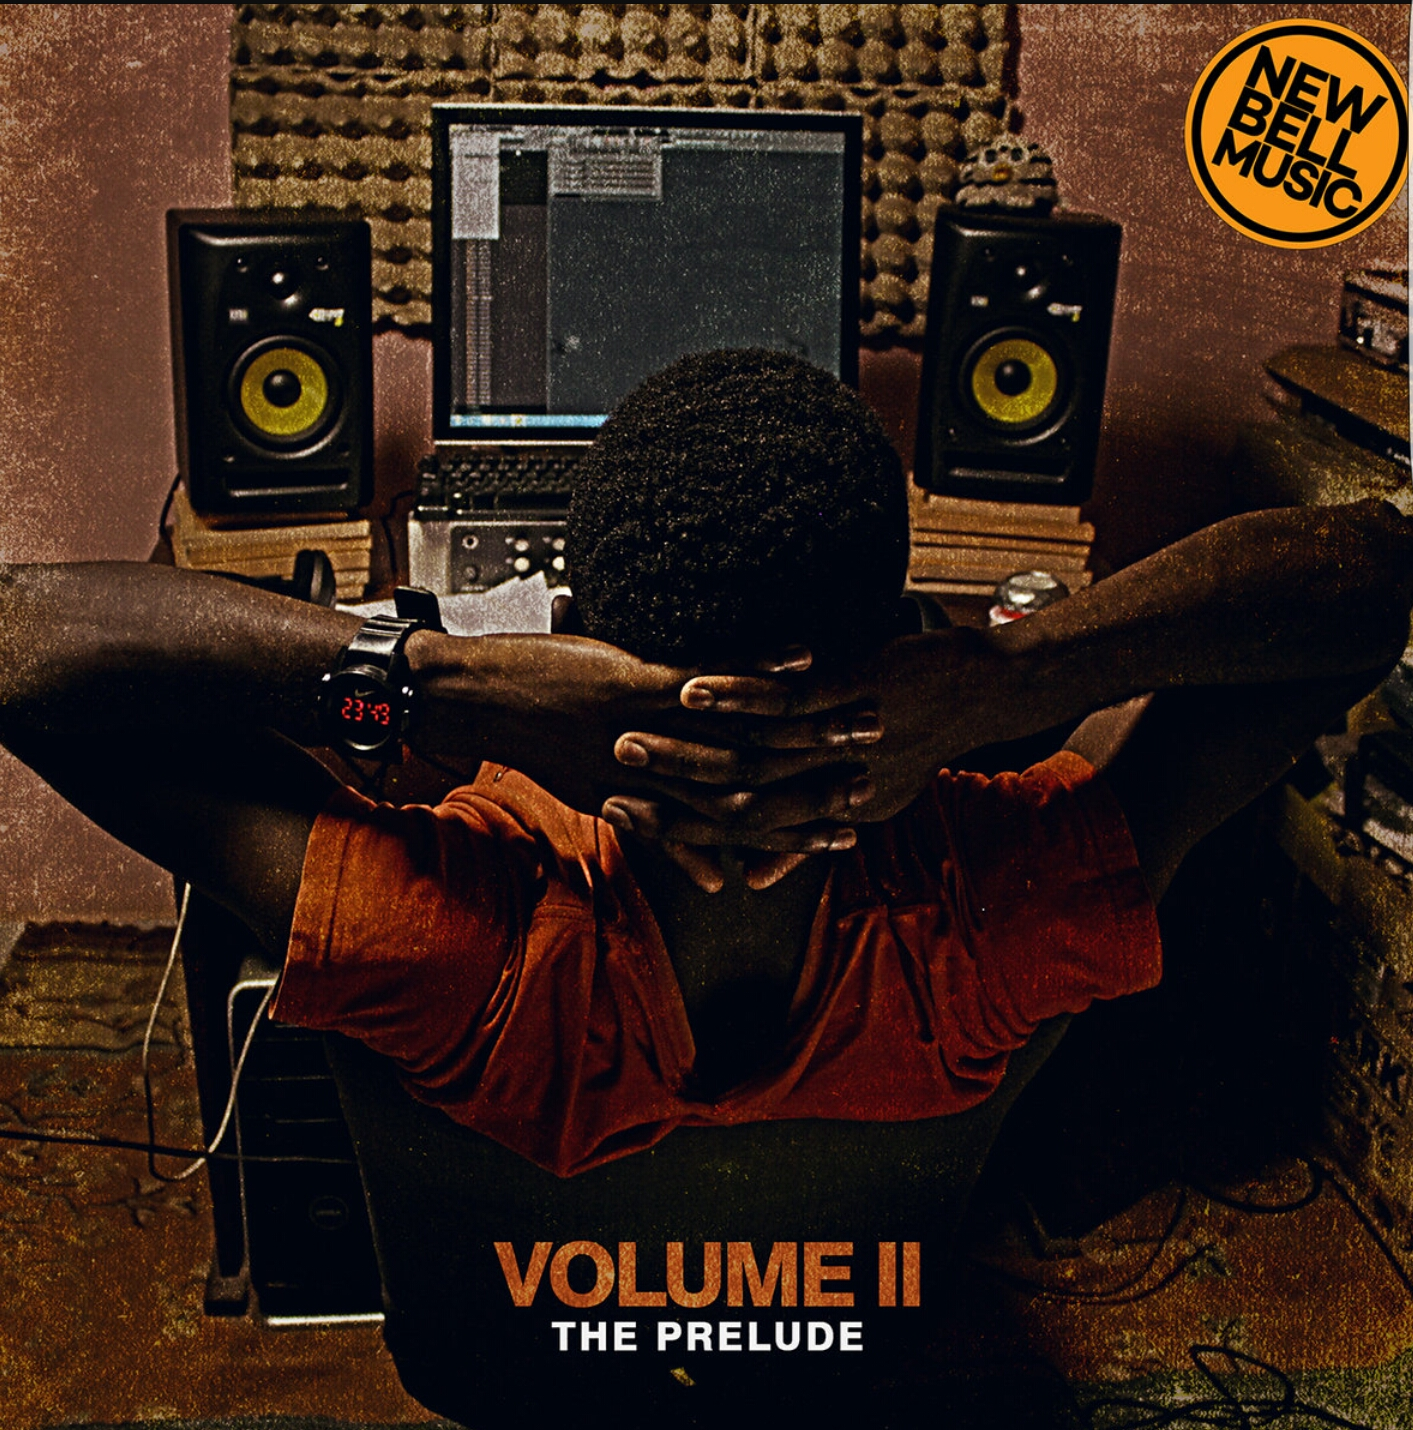 Volume II The prelude